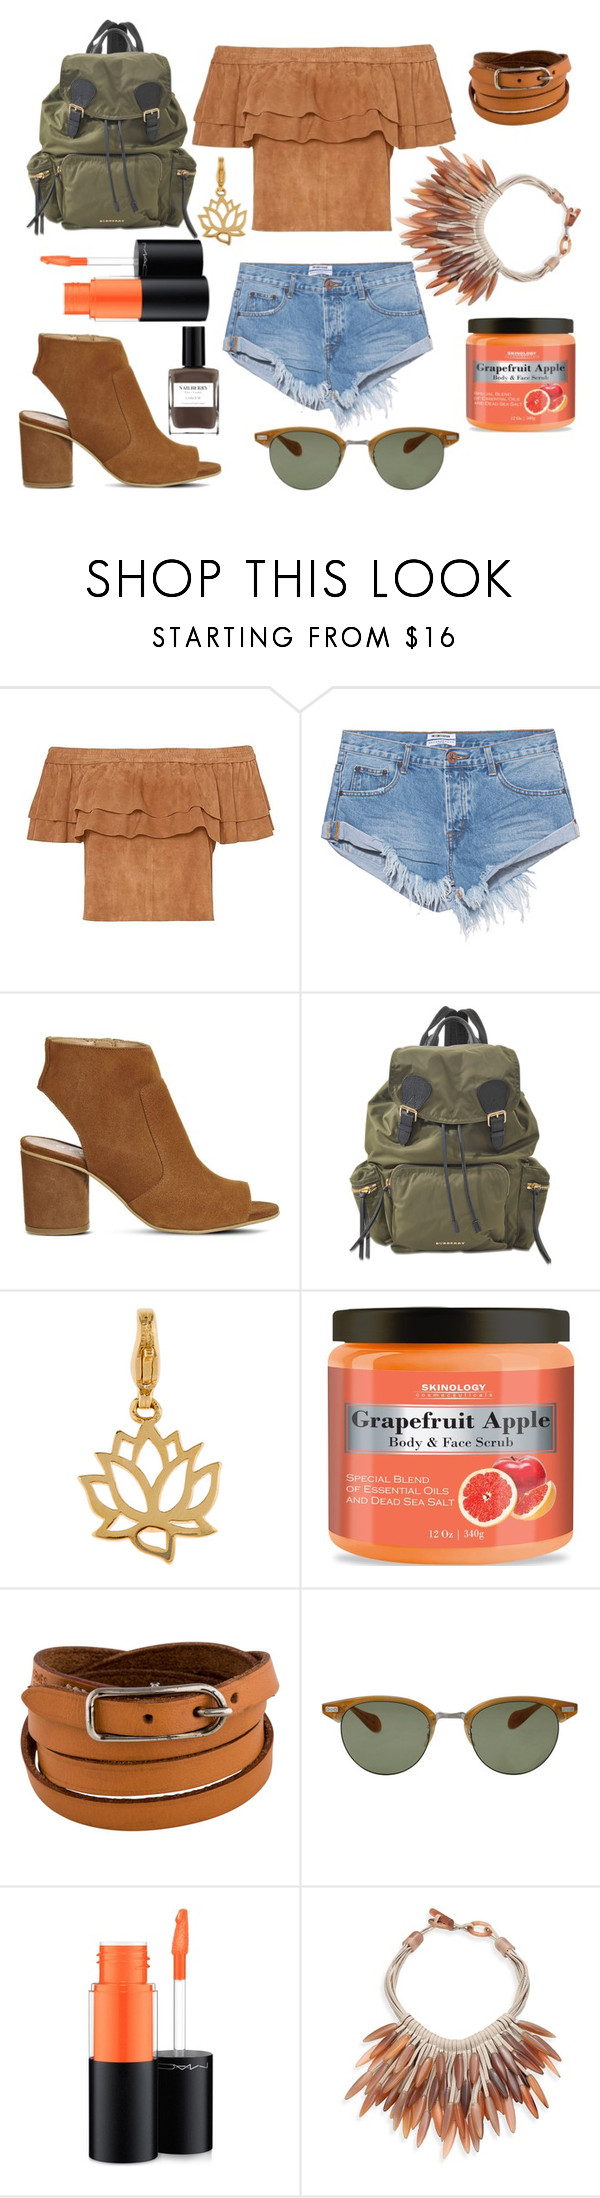 """* SEARCHING FOR ADVENTURES by bOO *"" by boo-sandra on Polyvore featuring One Teaspoon, Office, Burberry, Accessorize, Hermès, Oliver Peoples, MAC Cosmetics, Nest and Nailberry"